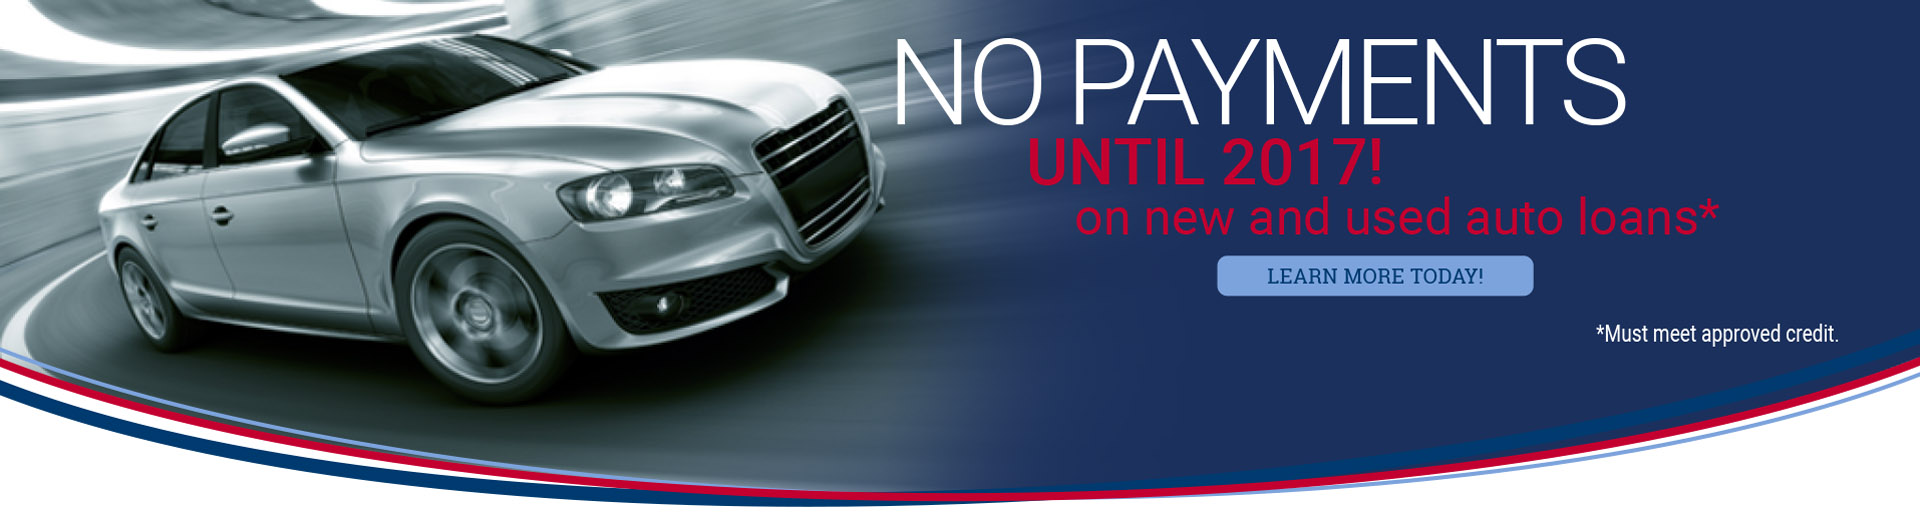 no payments-auto loan